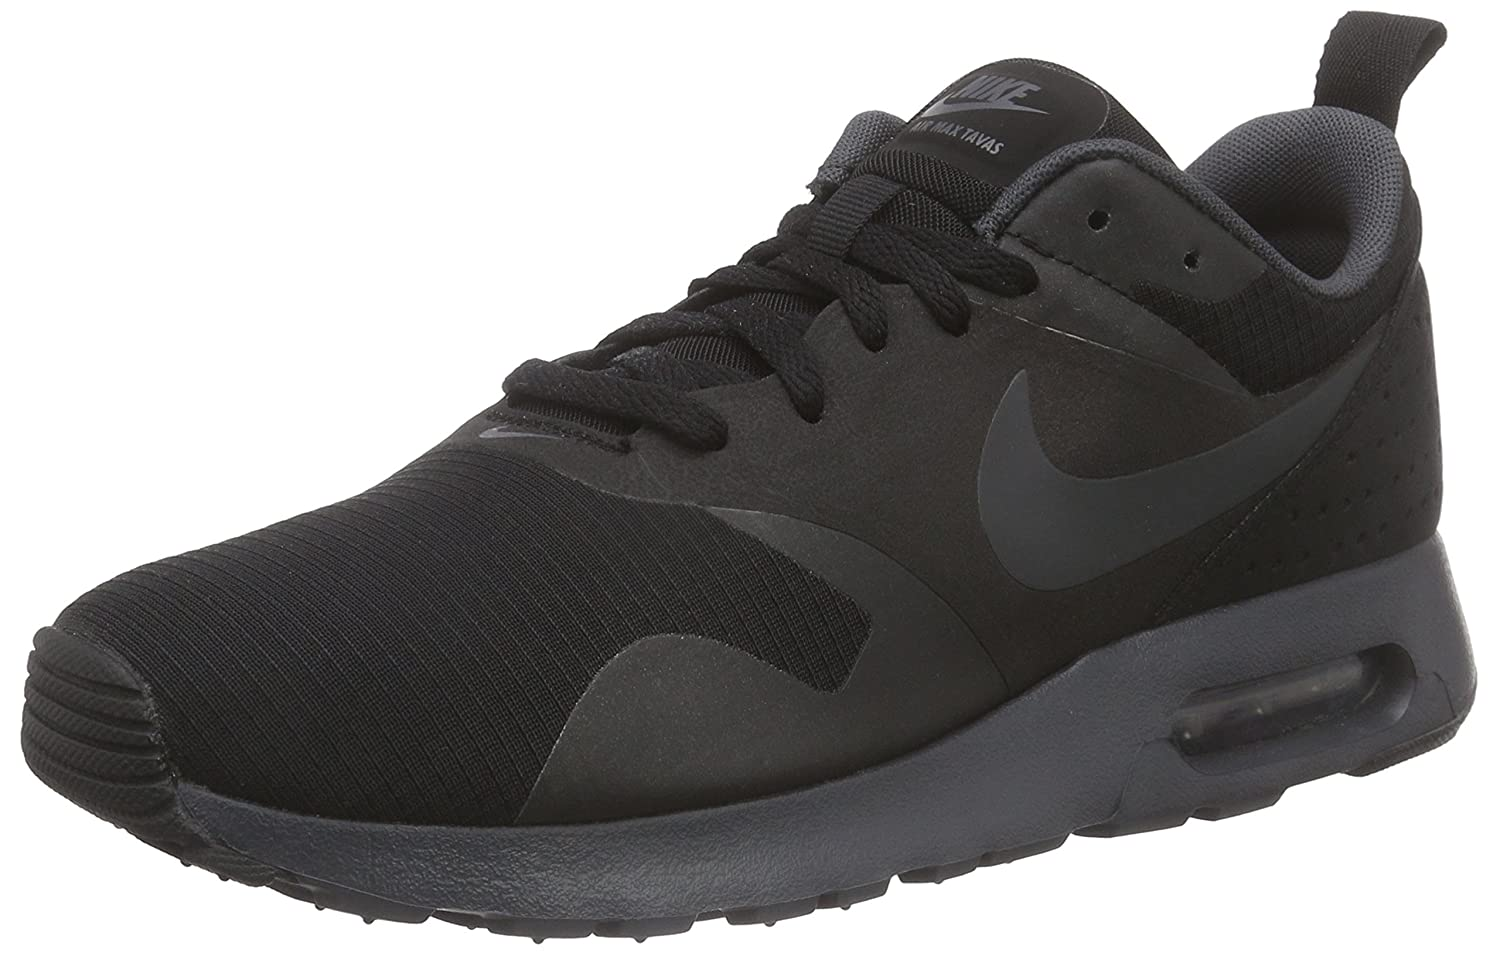 [ナイキ] NIKE スニーカー AIR MAX TRASIT B00R54ZQDK US08.5 Black/Black/Anthracite